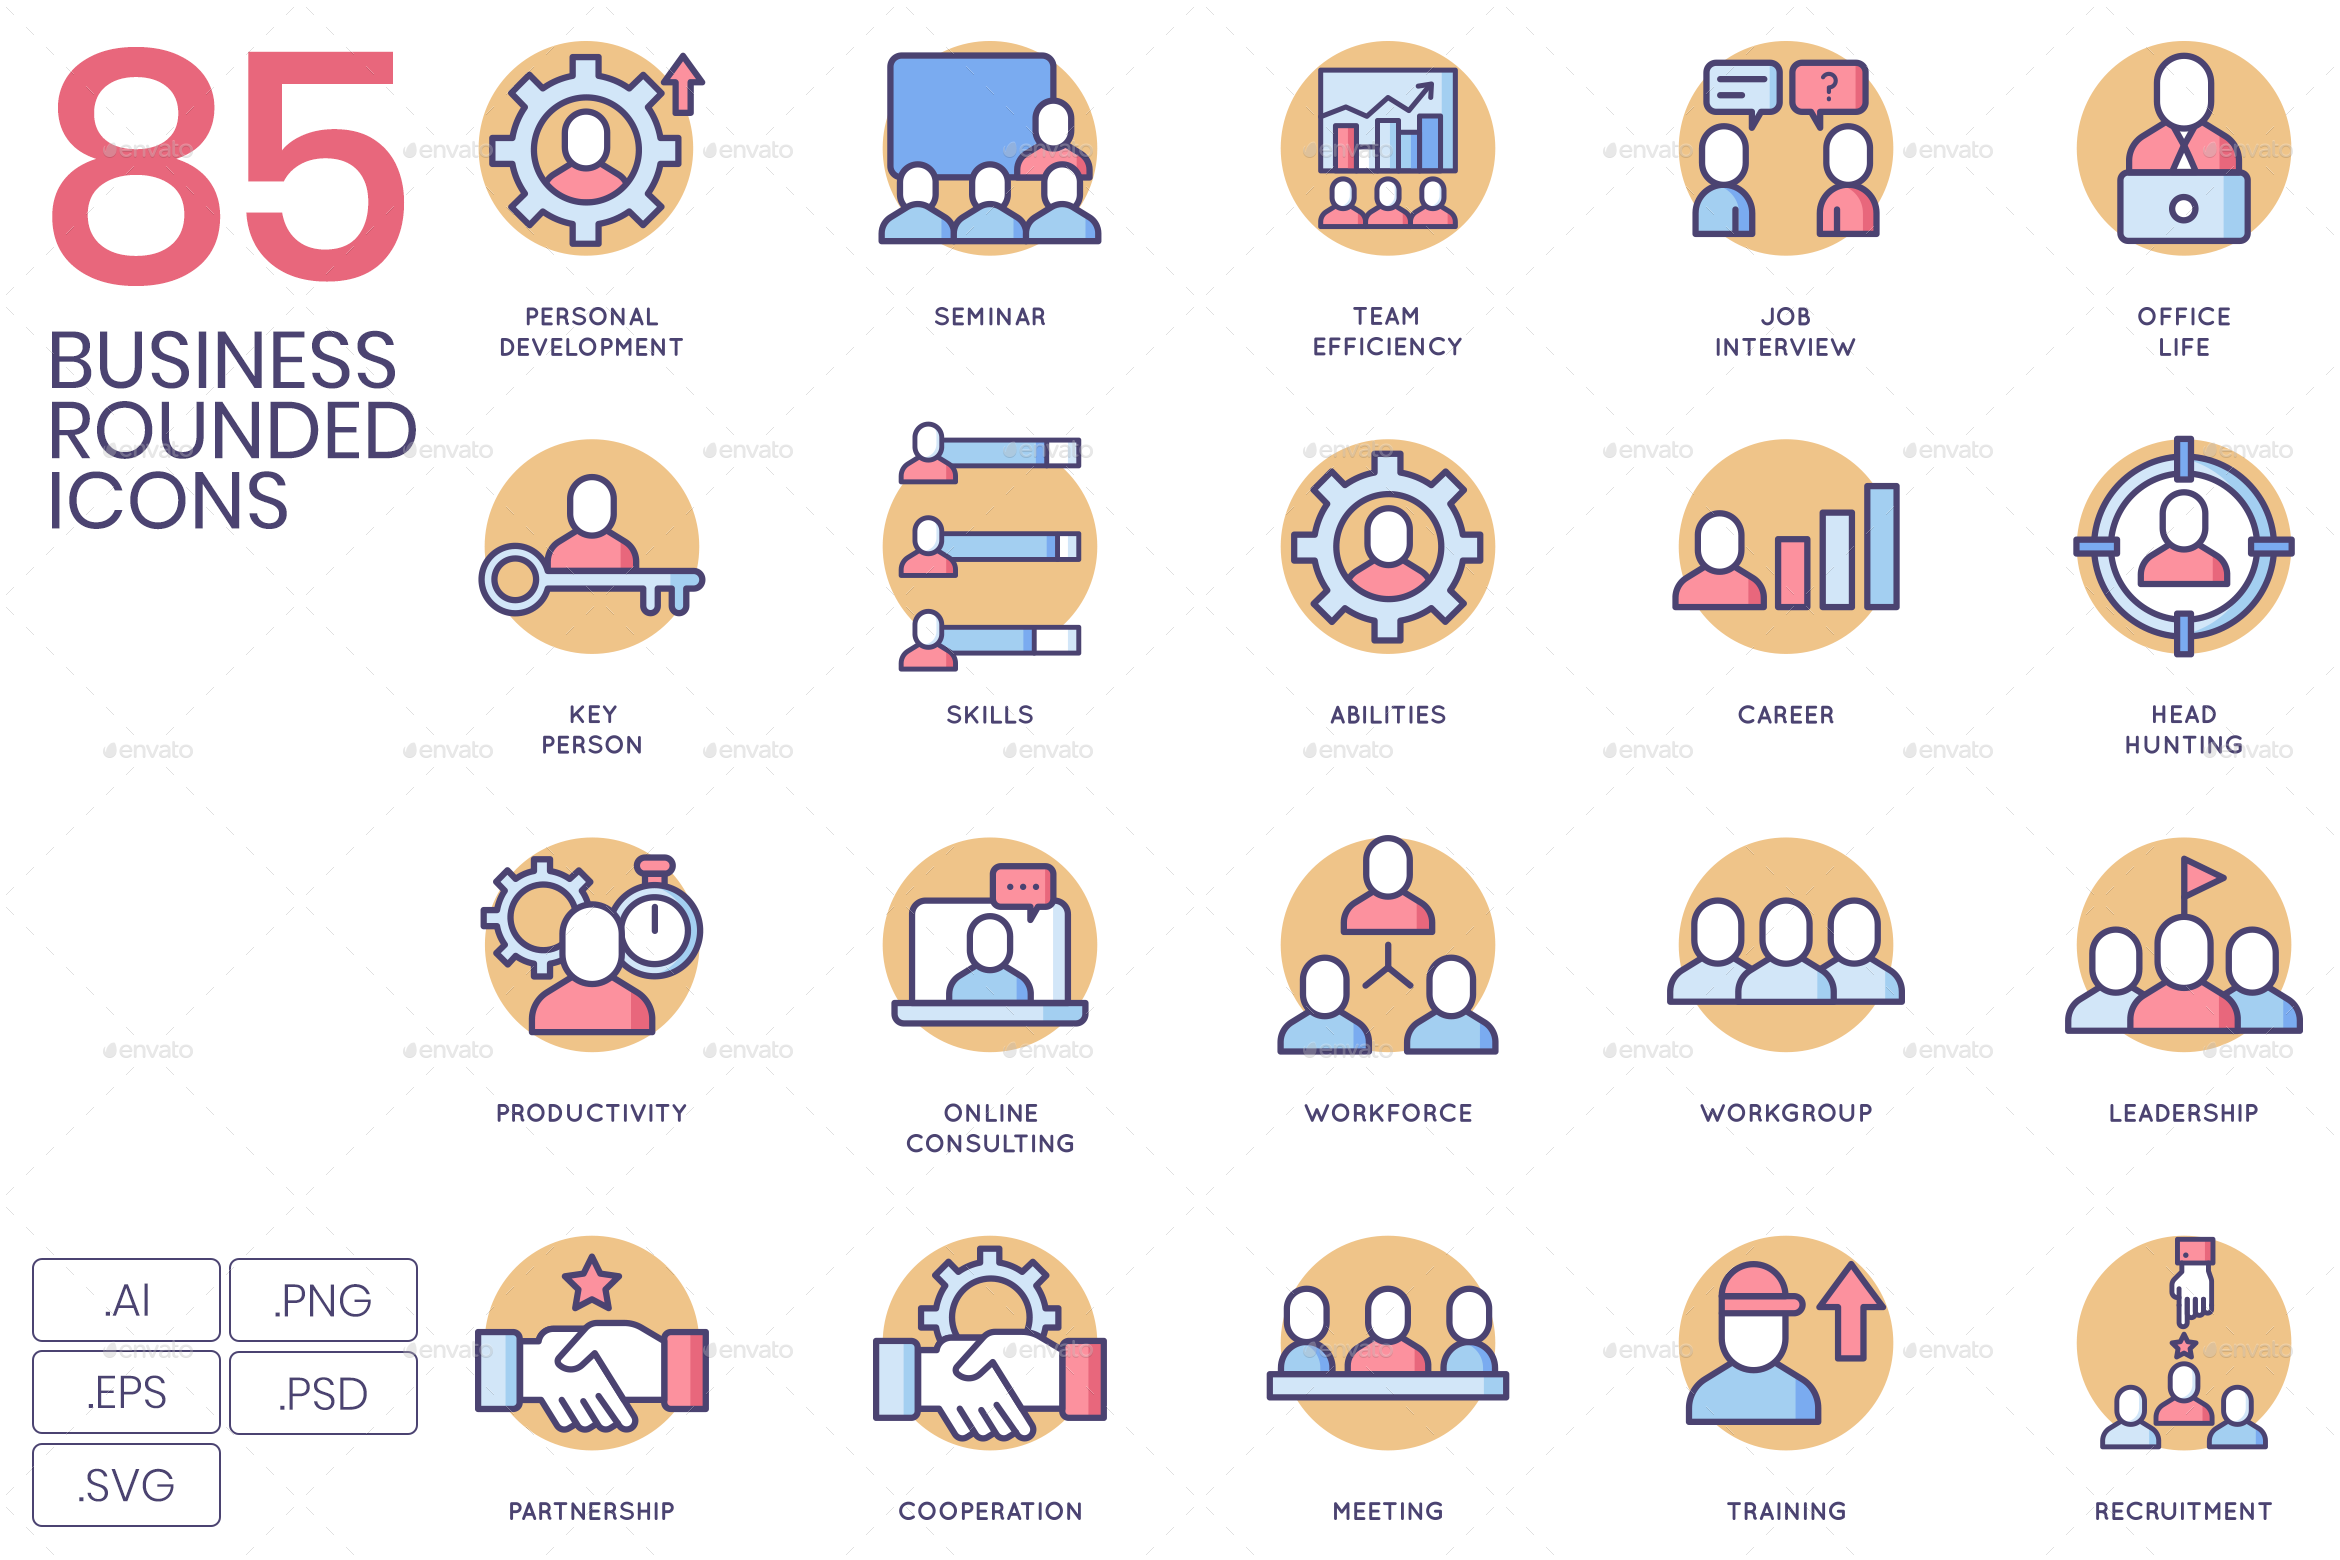 Business Icons - Rounded